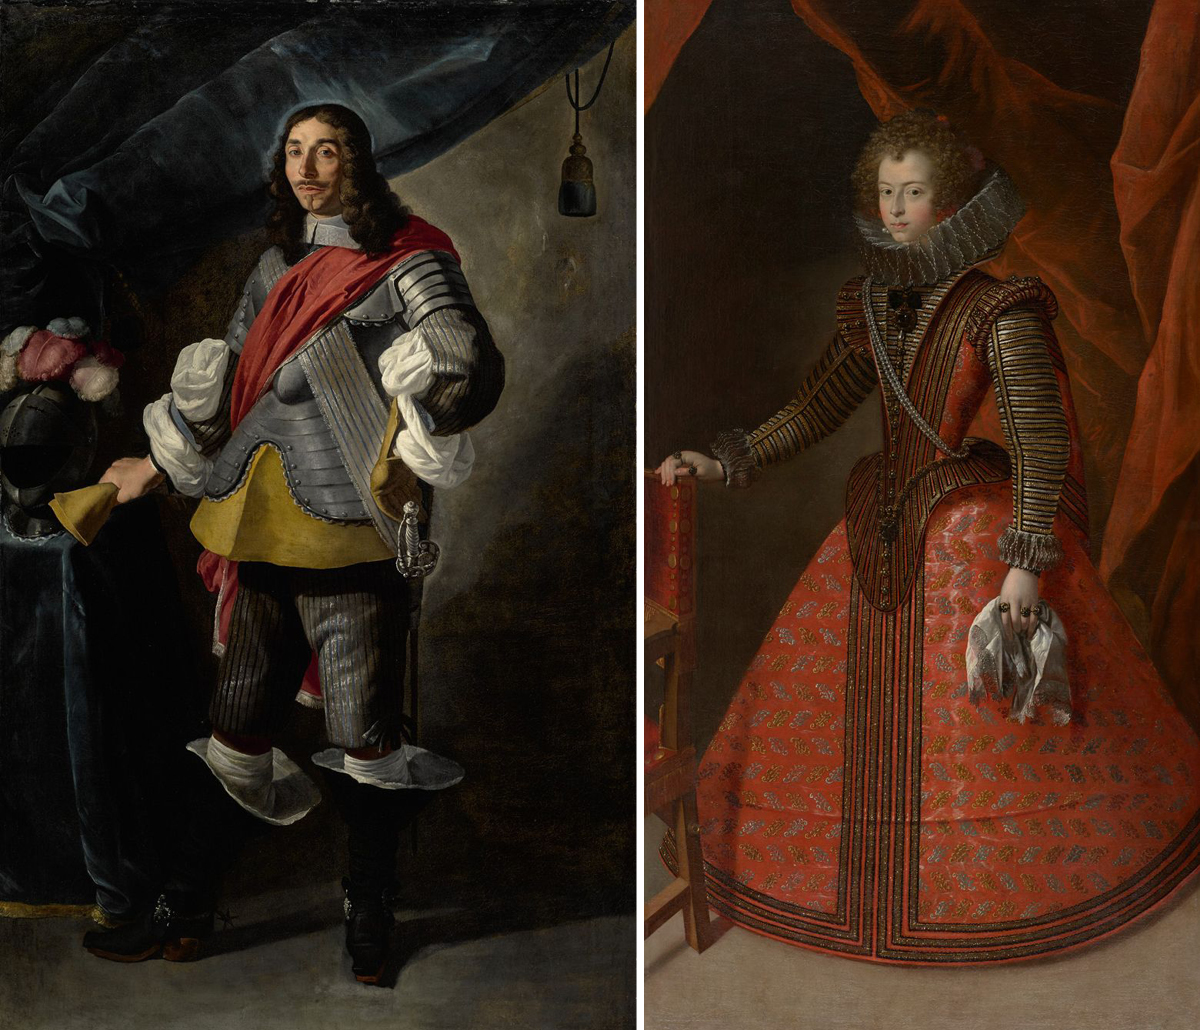 [Image description: 1. Portrait of Baron Ignazio de Pizzis, Carlo Ceresa, approximately 85 x 46 inches, oil on canvas. A full-length portrait of a light skinned man wearing partial armor standing with one hand on his left hip while his other hand holds a glove and rests on a table to his right. His dark curled hair is worn long and falls past his shoulder. He has a mustache and goatee and looks directly at the viewer. He wears armor on his torso and upper arms under a wide red sash that crosses his body from shoulder to waist. His silver velvet sleeves are slashed to reveal the voluminous white shirting beneath. He wears on tan glove on his left hand while holding the other in his right. A tunic of the same color is visible below the bottom edge of the armor. He wears silver velvet breeches with high black boots that flair out widely at the top. They are adorned with silver ornaments at his ankles. The man stands next to a blue draped table that holds a full-face armored helmet topped with feathers in red, white and gray. Behind the figure, navy blue fabric drapes across the left side of the portrait in front of a putty colored background.] [Image description: 2. Portrait of Infanta Maria Ana de Austria, 82 5/8 x 46 ½ inches, oil on canvas. A full-length portrait of a young woman in an elaborate, rust red, court dress. The figure stands in a three-quarter view with her right hand on the back of a partially seen wooden and red fabric chair. Her left hand is at her side holding a lace edged handkerchief and she wears three gold rings. The woman has light skin, her face is framed by light brown curls, she looks to the viewer directly with large dark eyes, and has a small, pursed mouth. She wears pearl earrings seen above a deep white lace ruff: stiffened lace arranged in deep, regular folds worn around the neck. The bodice of the dress is encrusted with gold braiding alternating with black and silver stripes. Gold and pearl buttons line the front deep V shaped bodice e